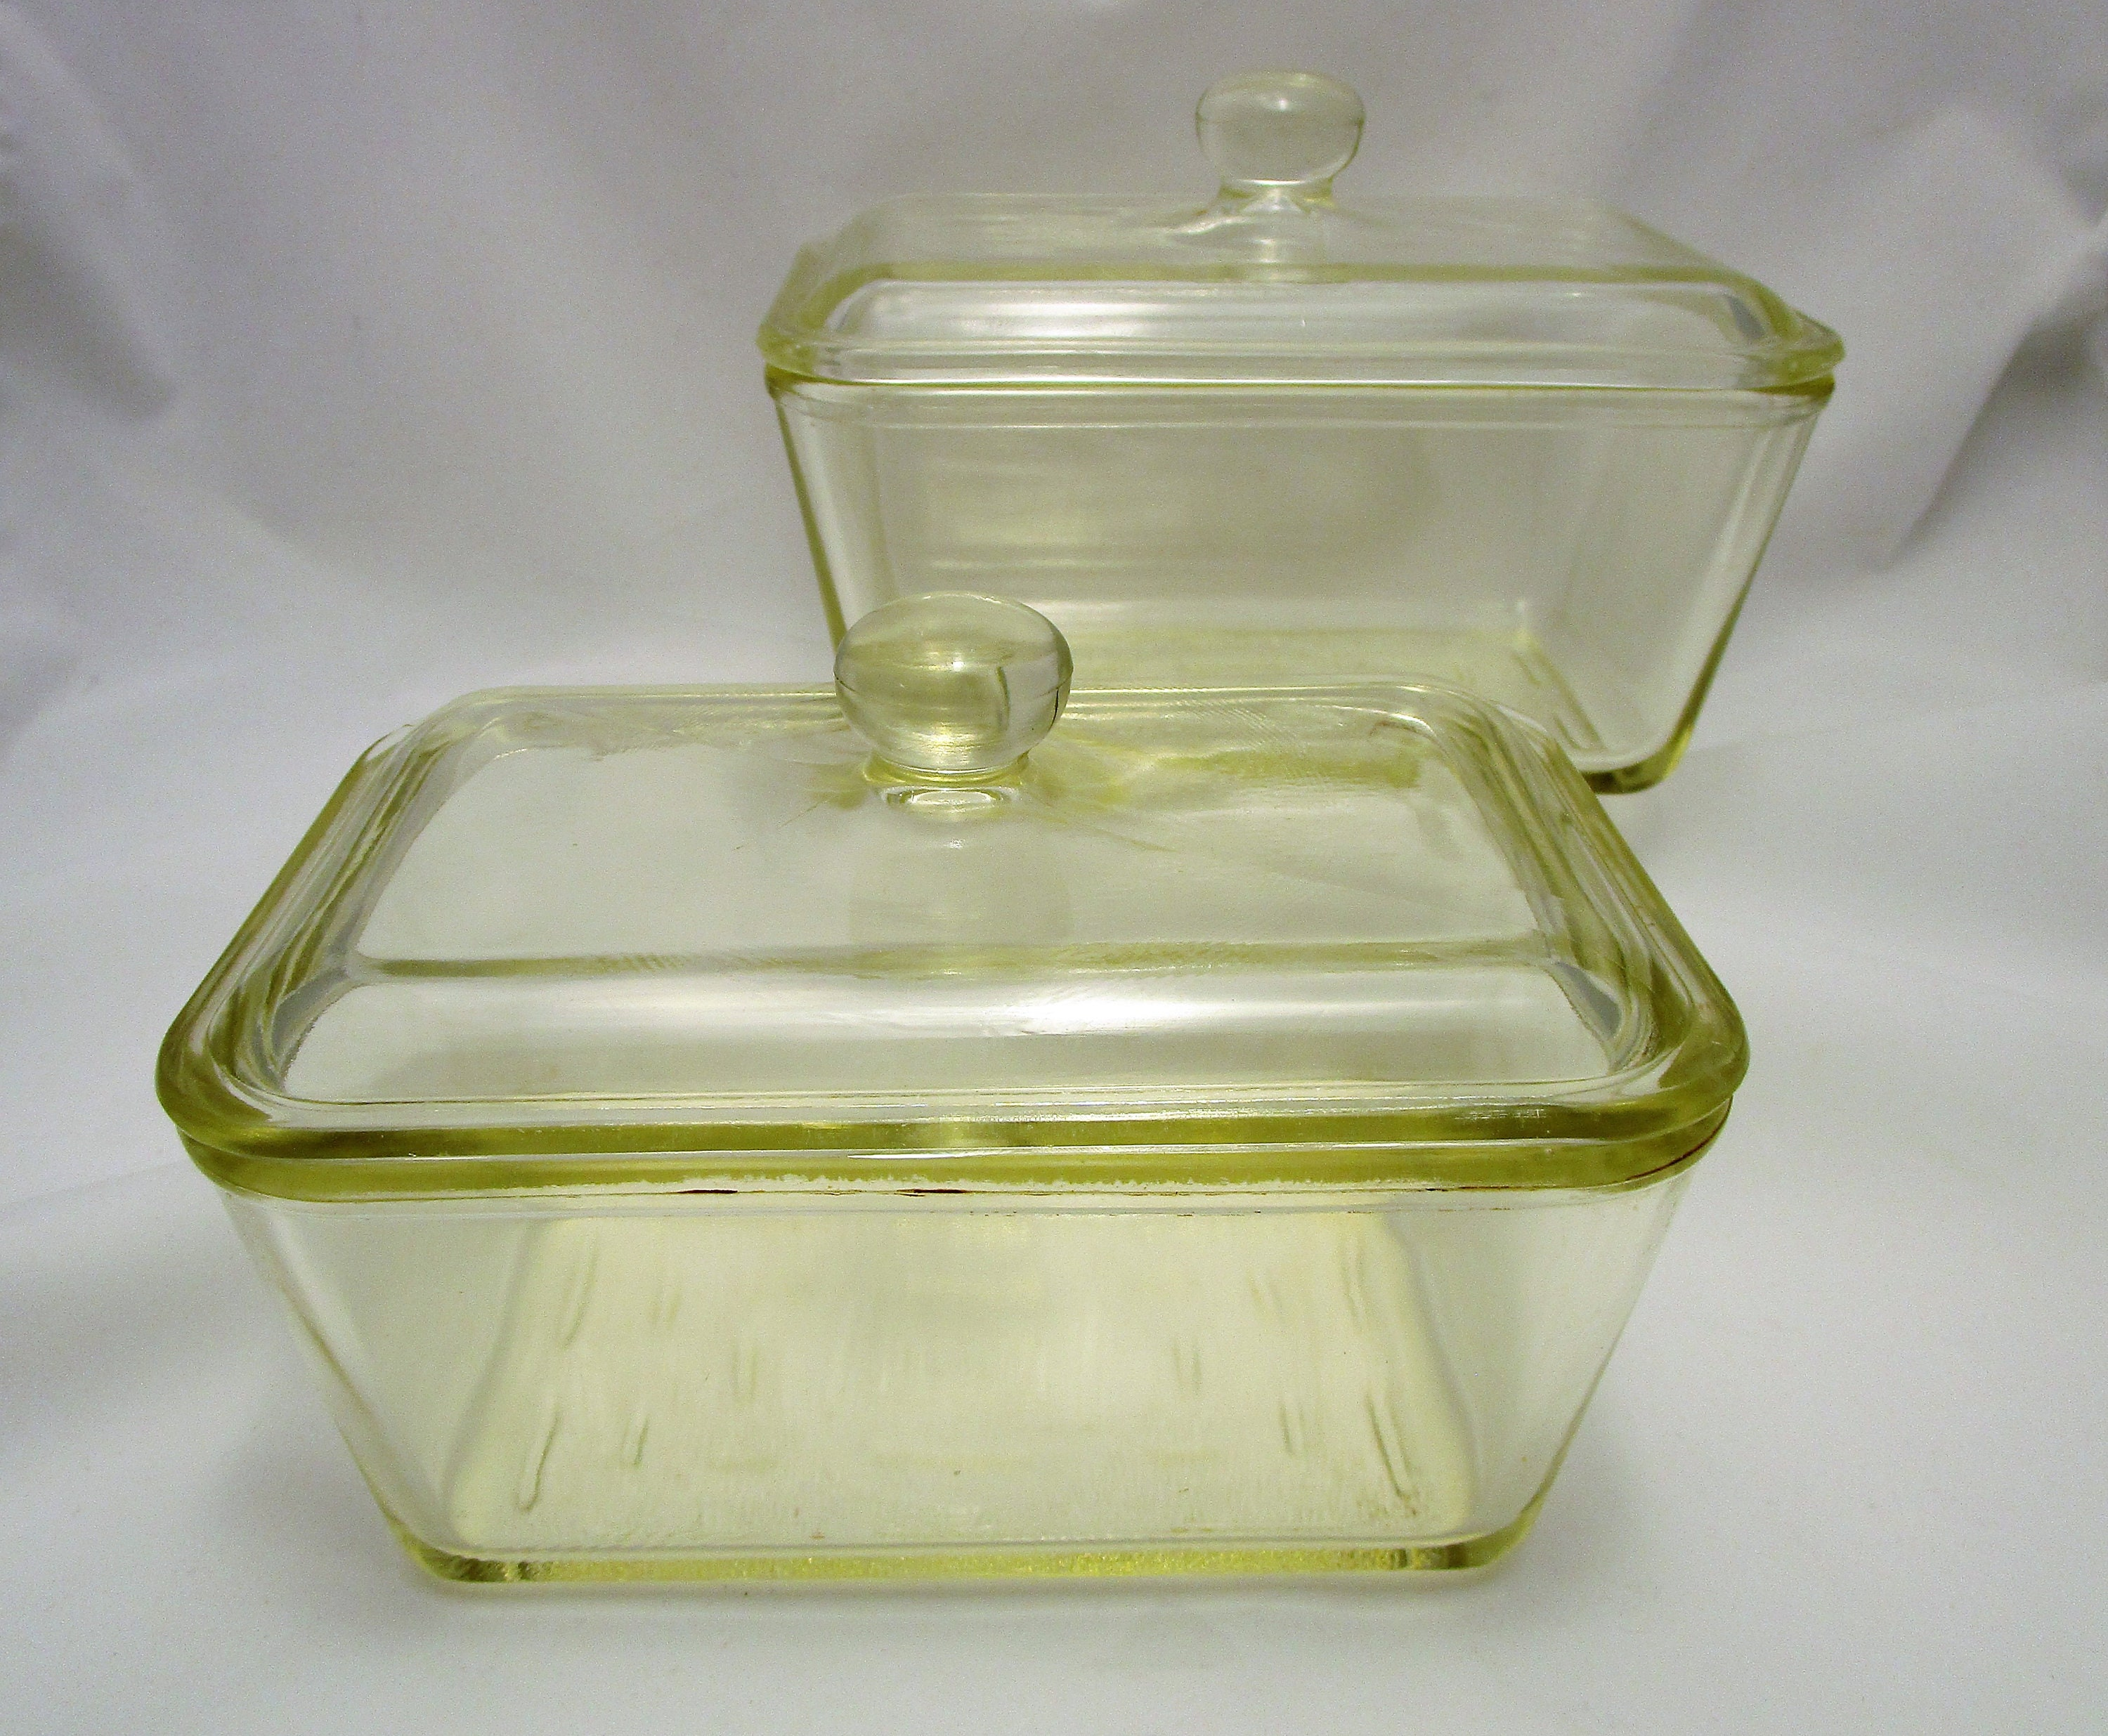 Vintage Glasbake Refrigerator Dishes Two Lidded Dishes With Etsy